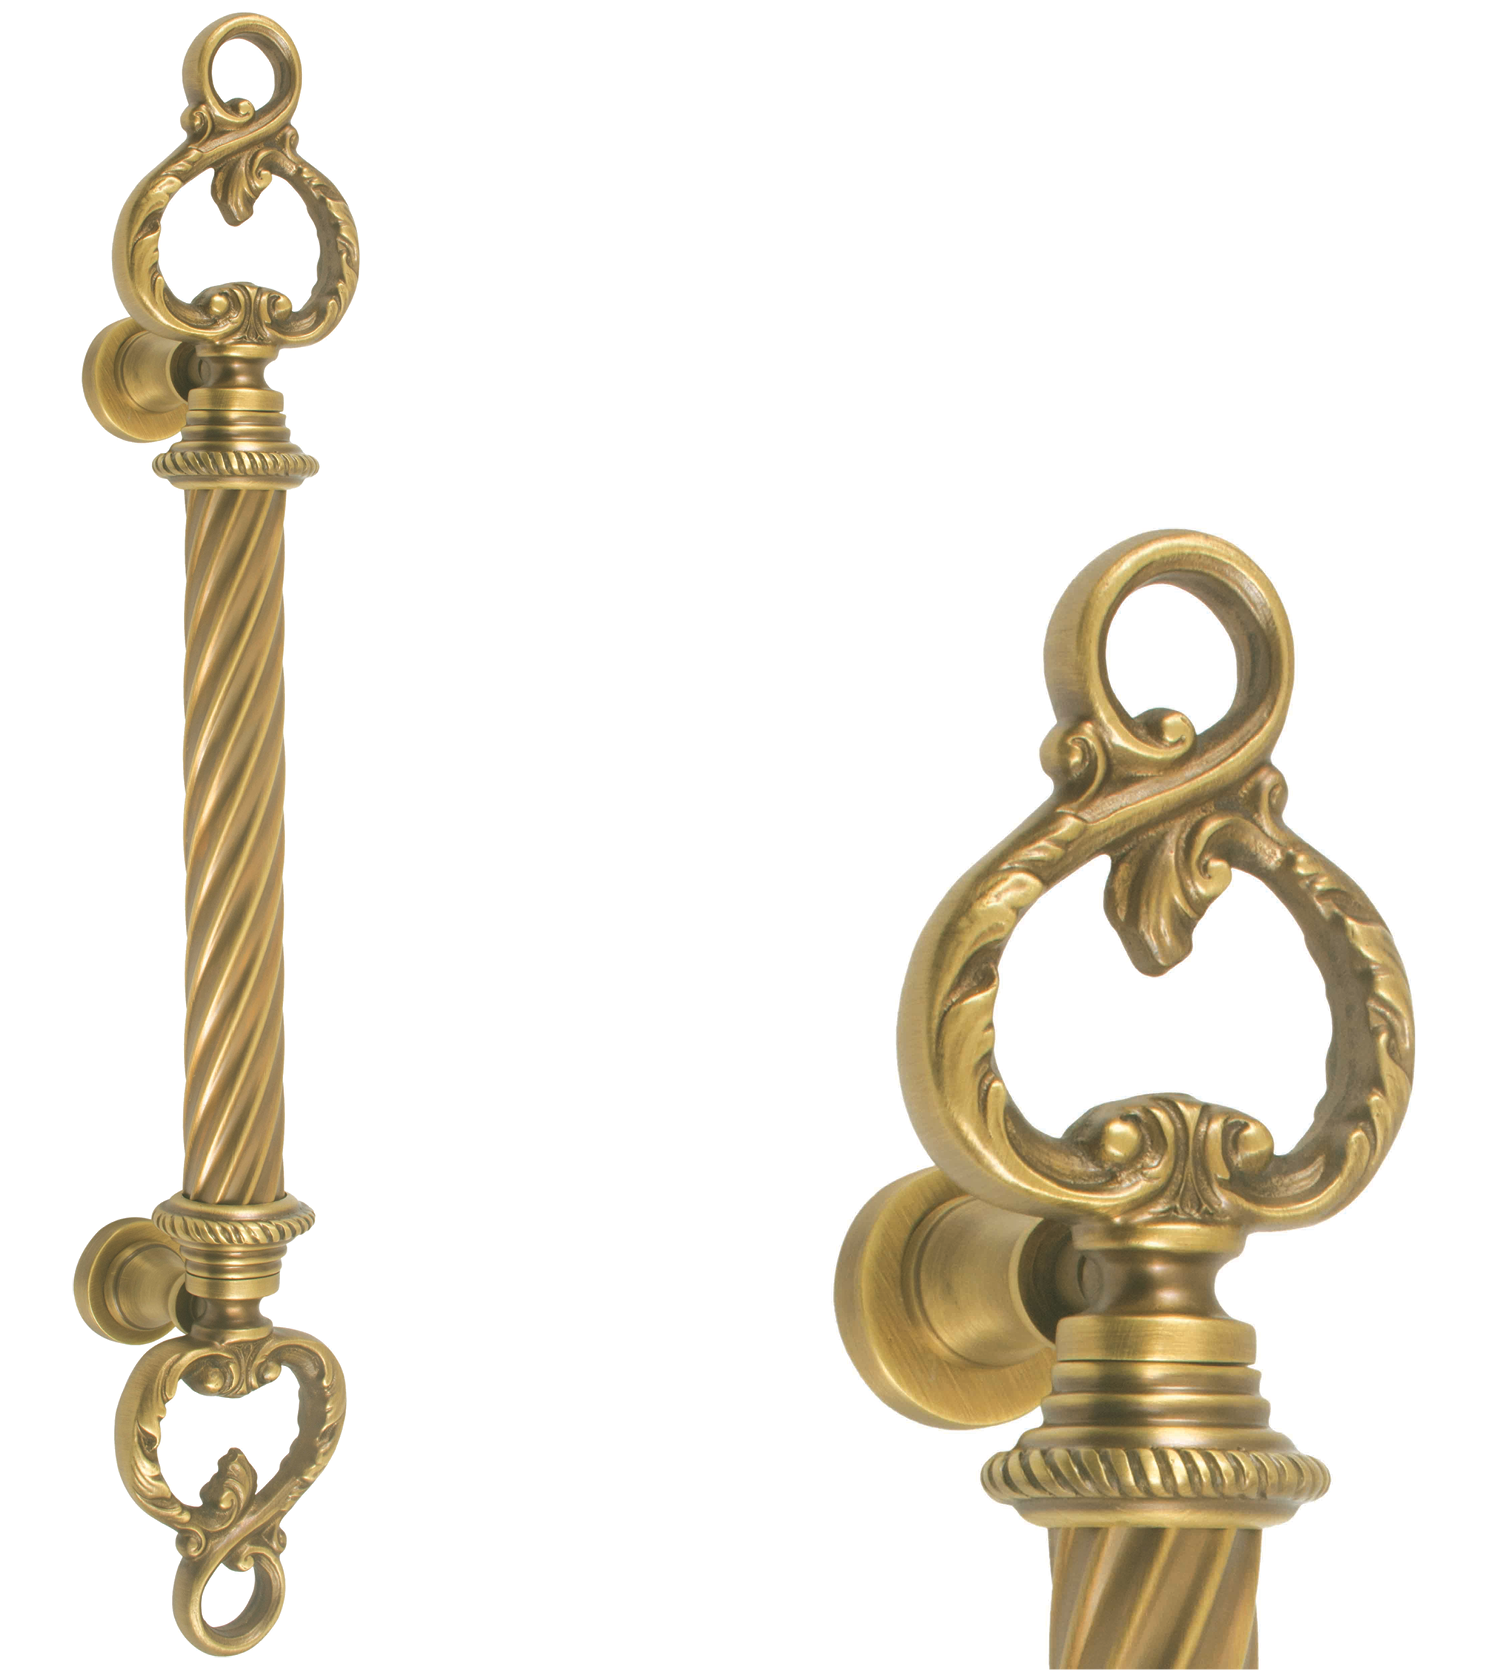 Stylish main door pull handle and locks for glass and wooden doors  for villa